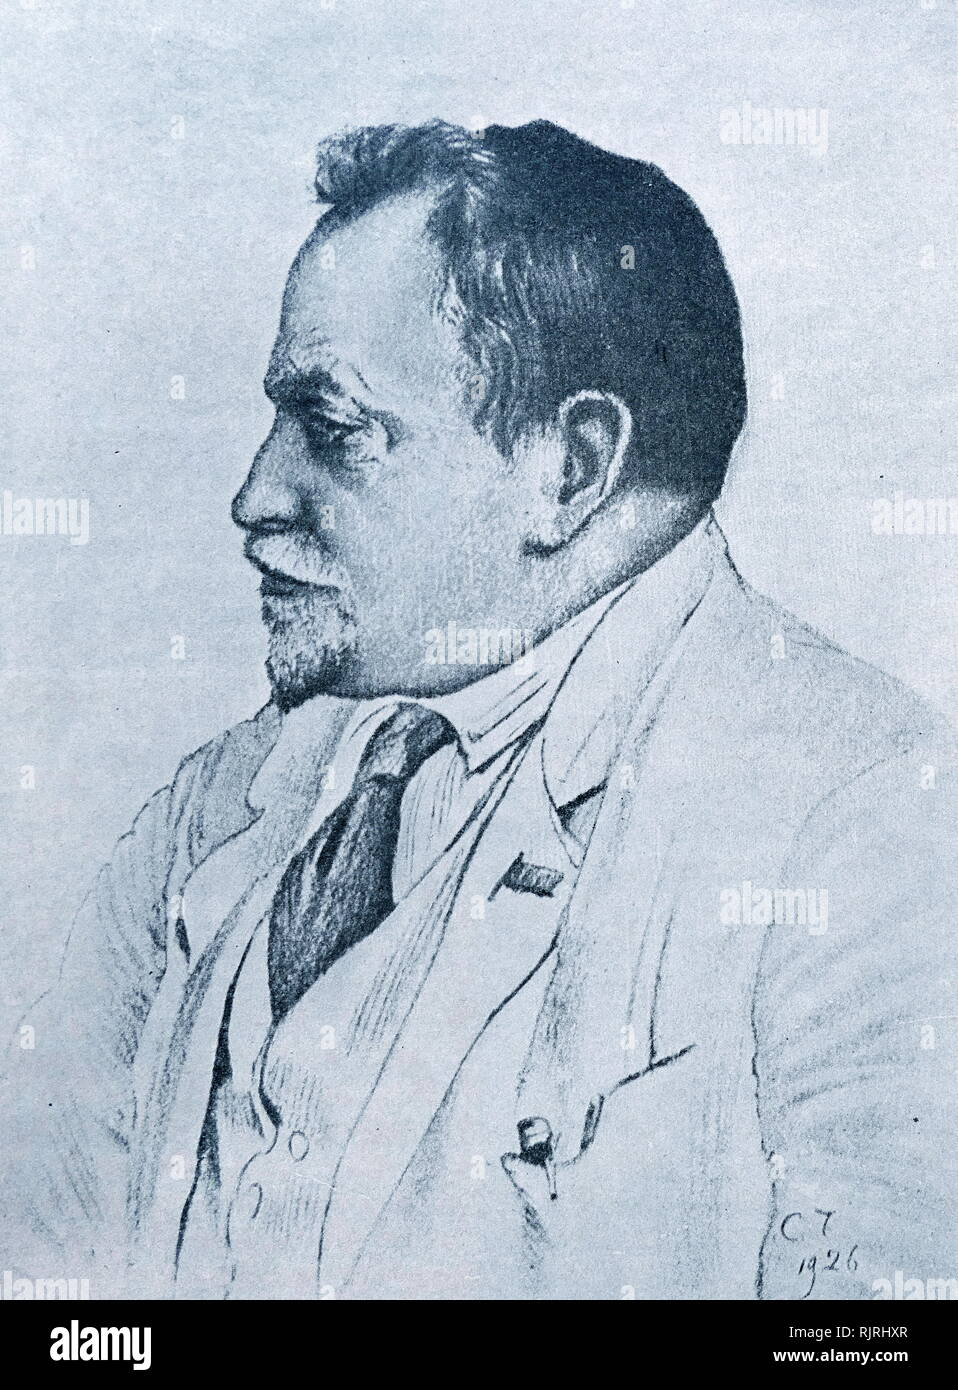 Nikolai Aleksandrovich Semashko (1874 - 1949); Russian statesman who became People's Commissar of Public Health in 1918, and served in that role until 1930. He was one of the organizers of the health system in the Soviet Union. - Stock Image